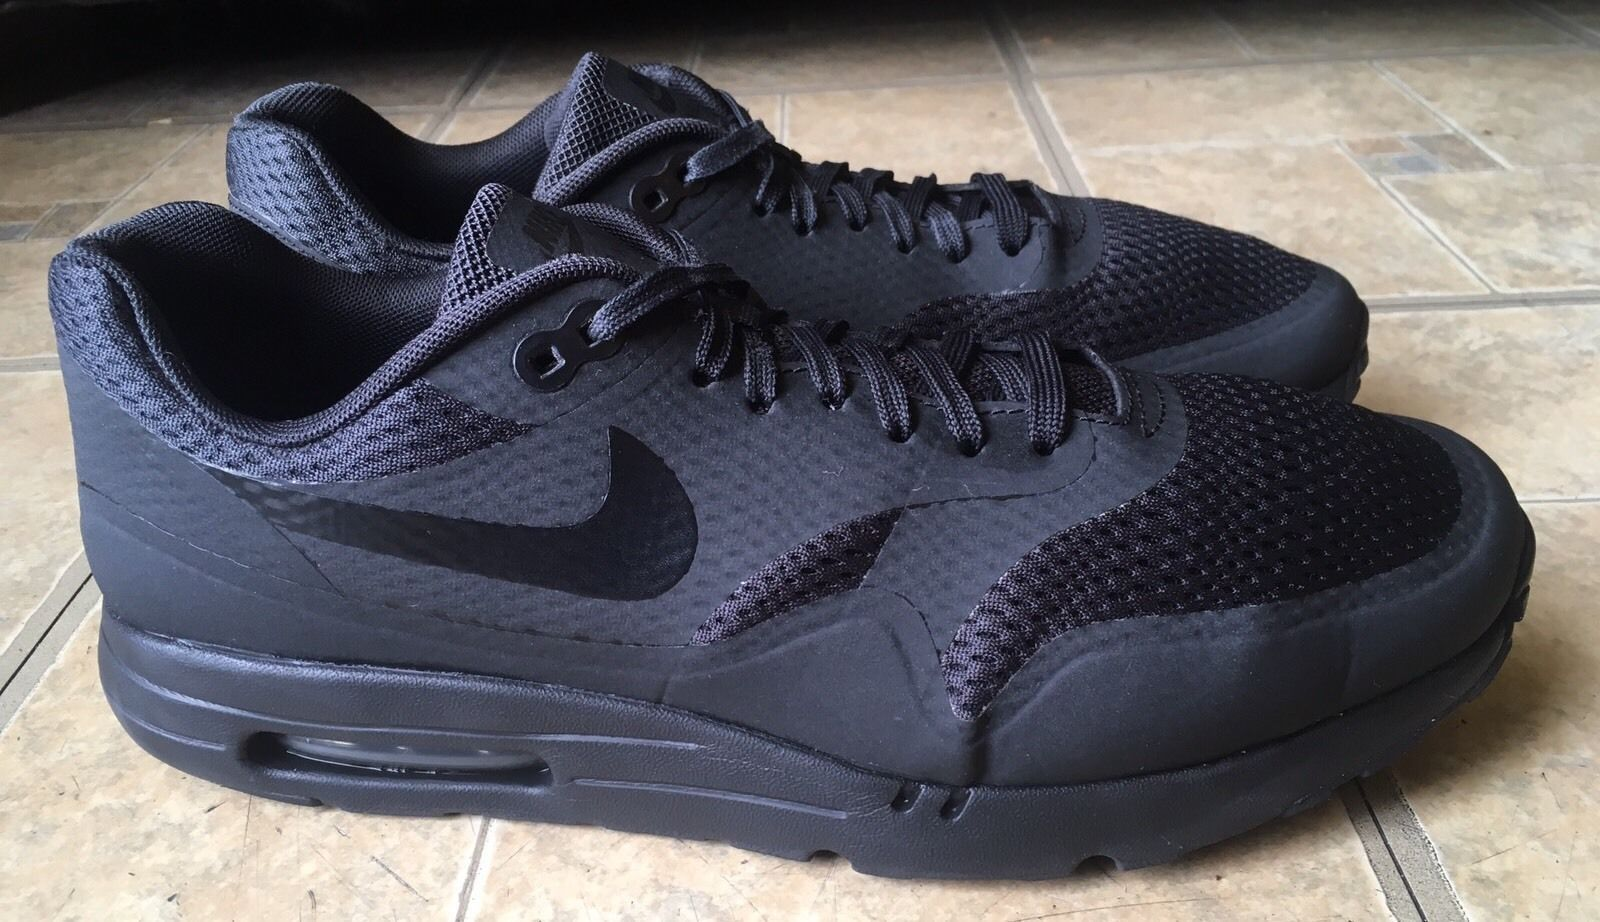 6fc3210b6d Mens Nike Air Max 1 Ultra Essential Black Running Shoes 819476 001 Size 11